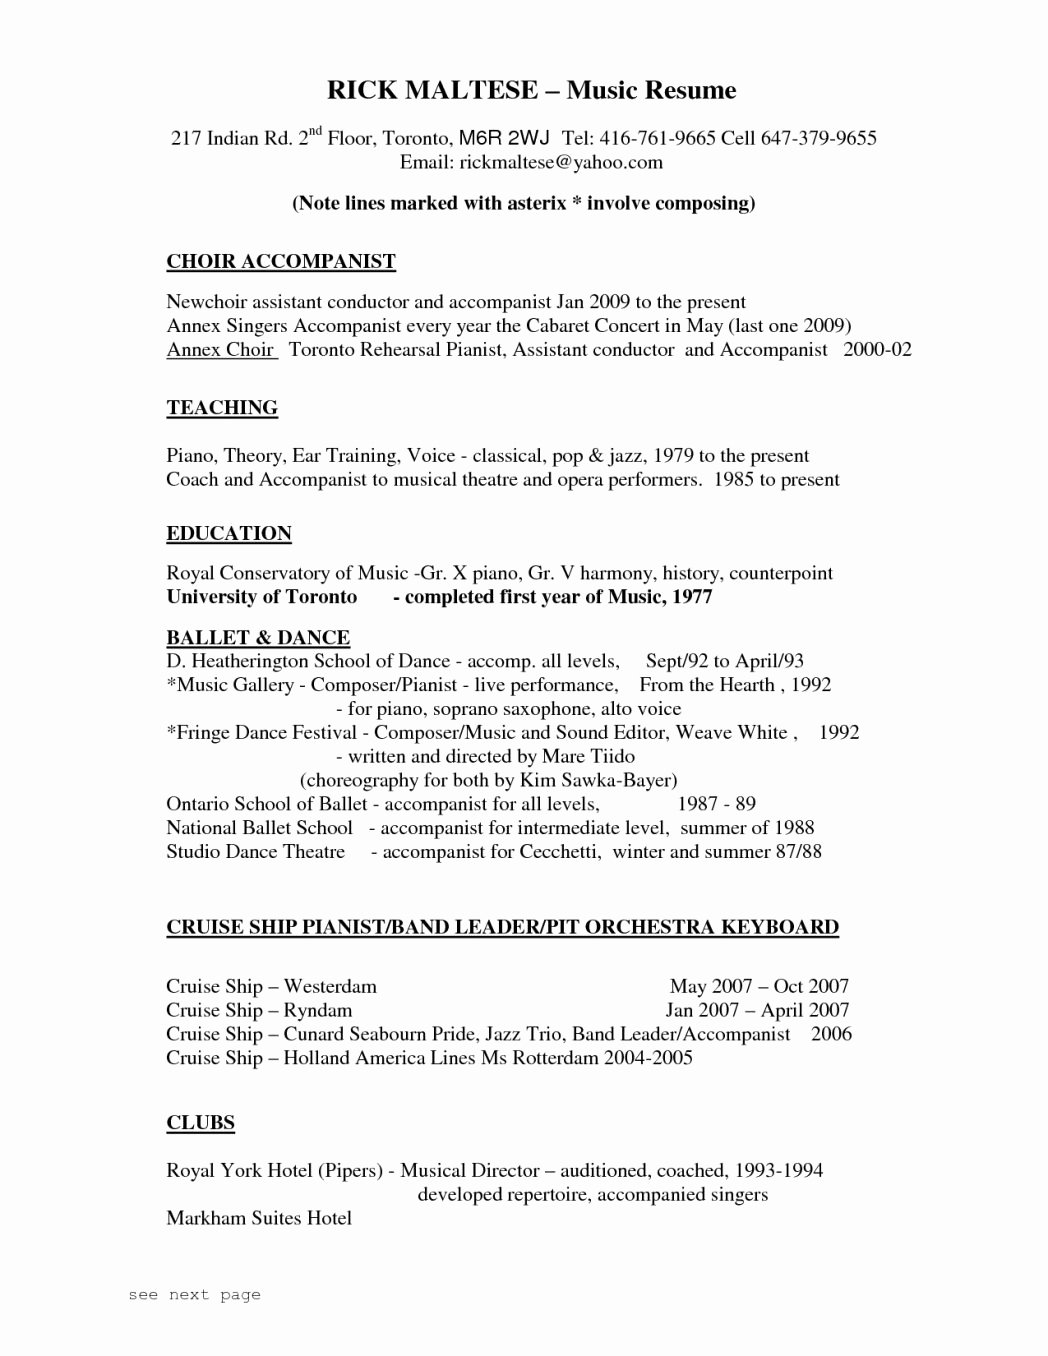 Impressive Music Resume Template Industry theatre Business